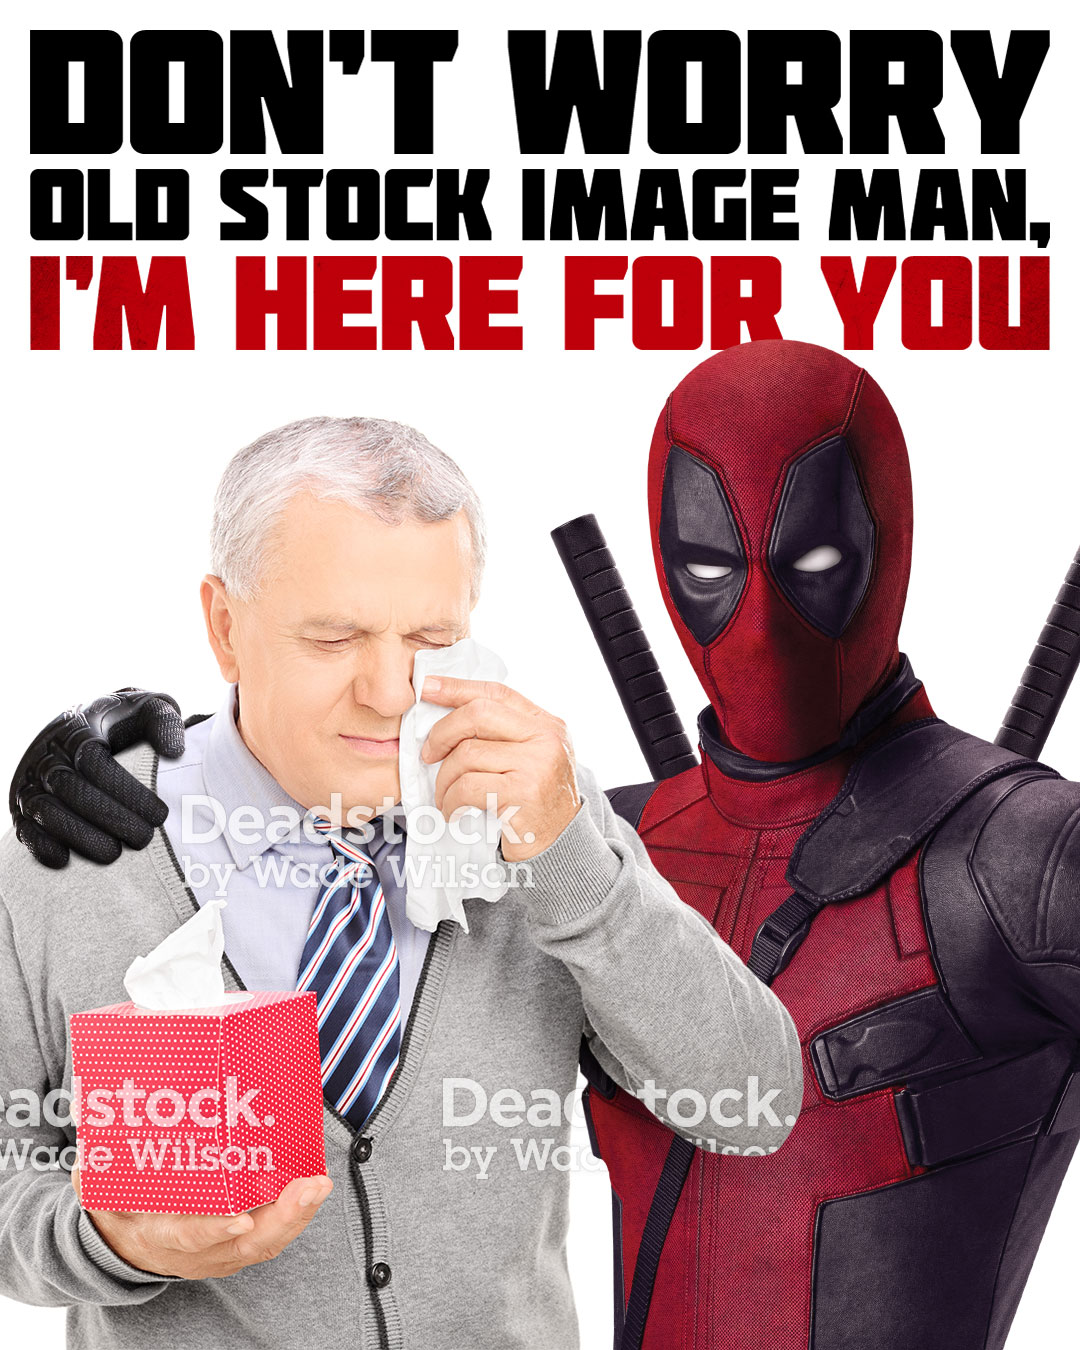 Don't worry old stock image man, I'm here for you